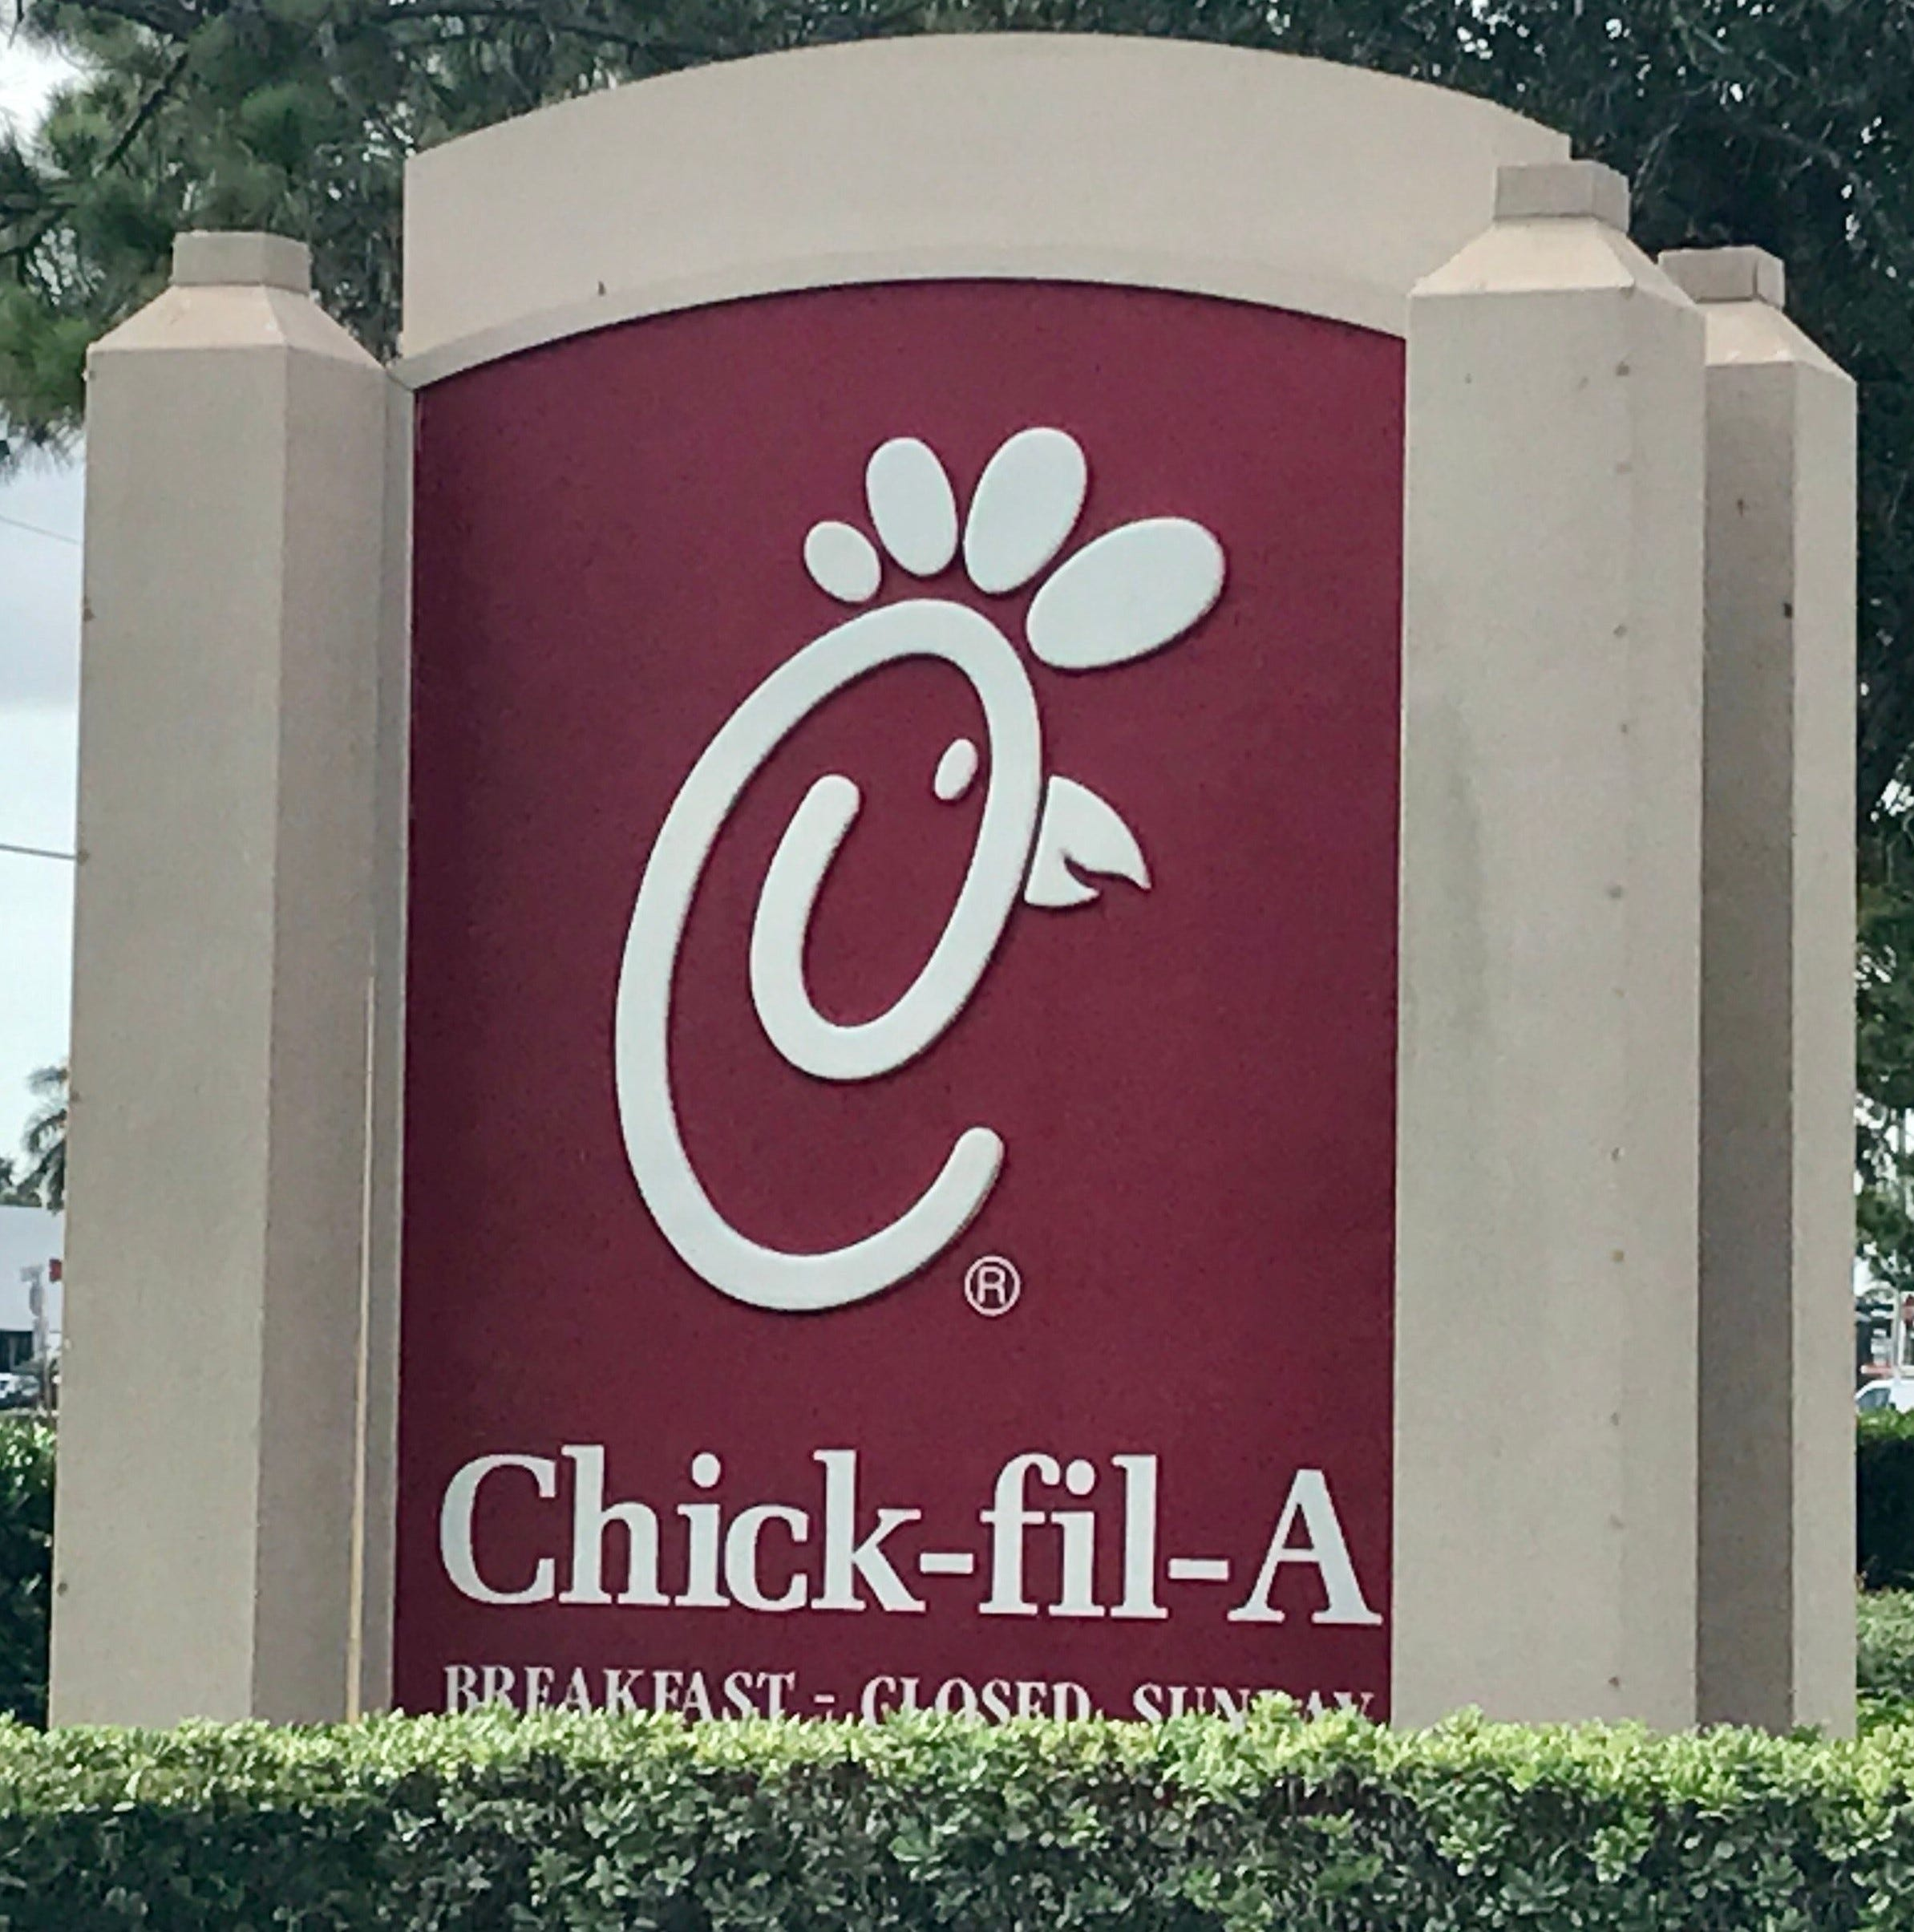 A new Chick-fil-A restaurant is coming to Viera